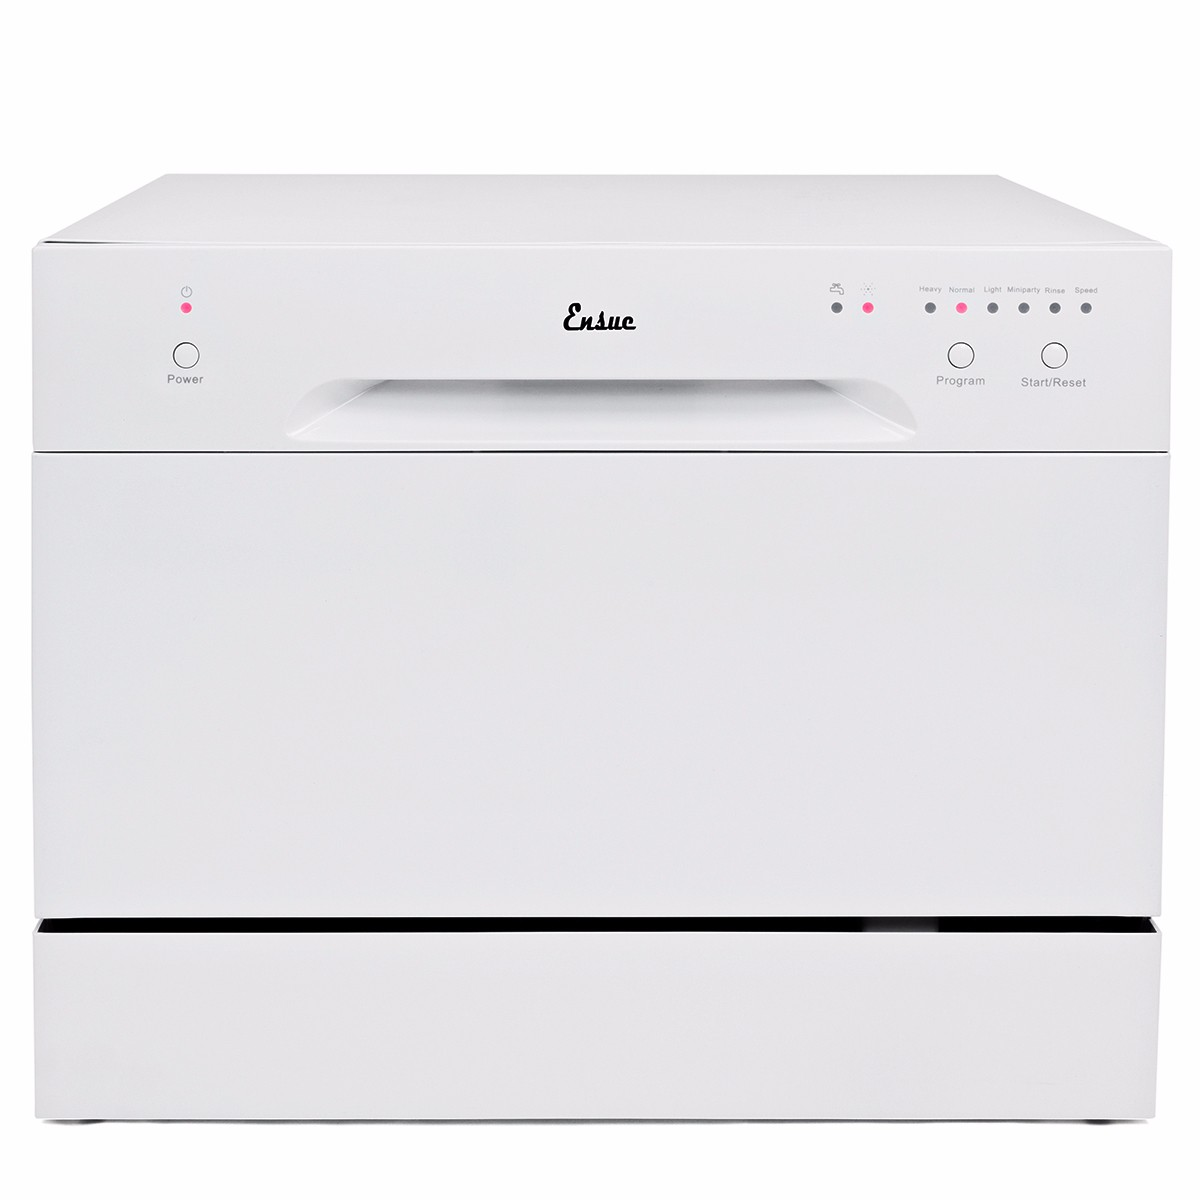 Ensue Countertop Dishwasher Energy Star Certified 6-Place 6-Program Setting, White by Ensue